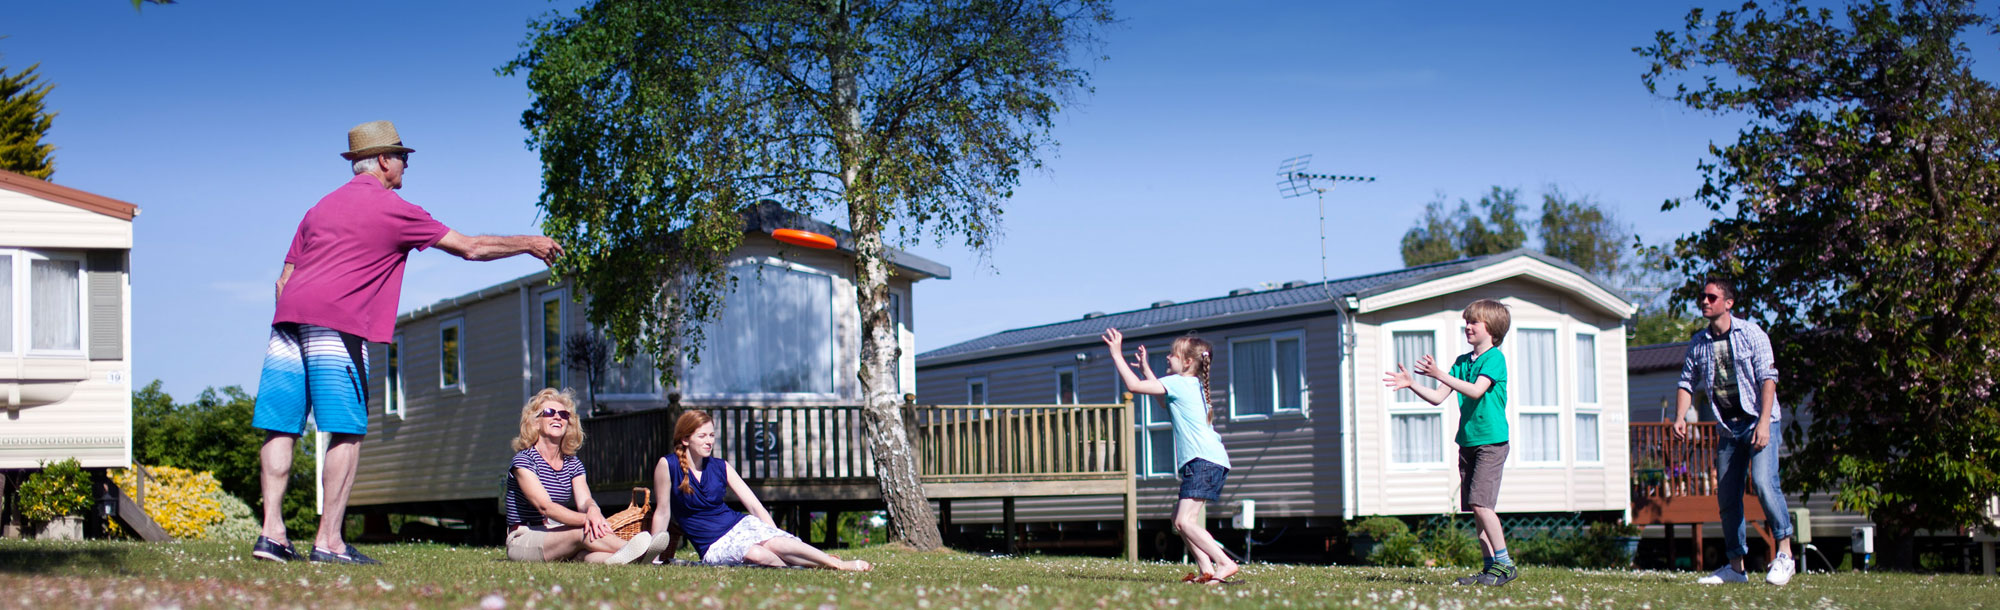 Caravan holidays Essex - Waldegraves holiday park